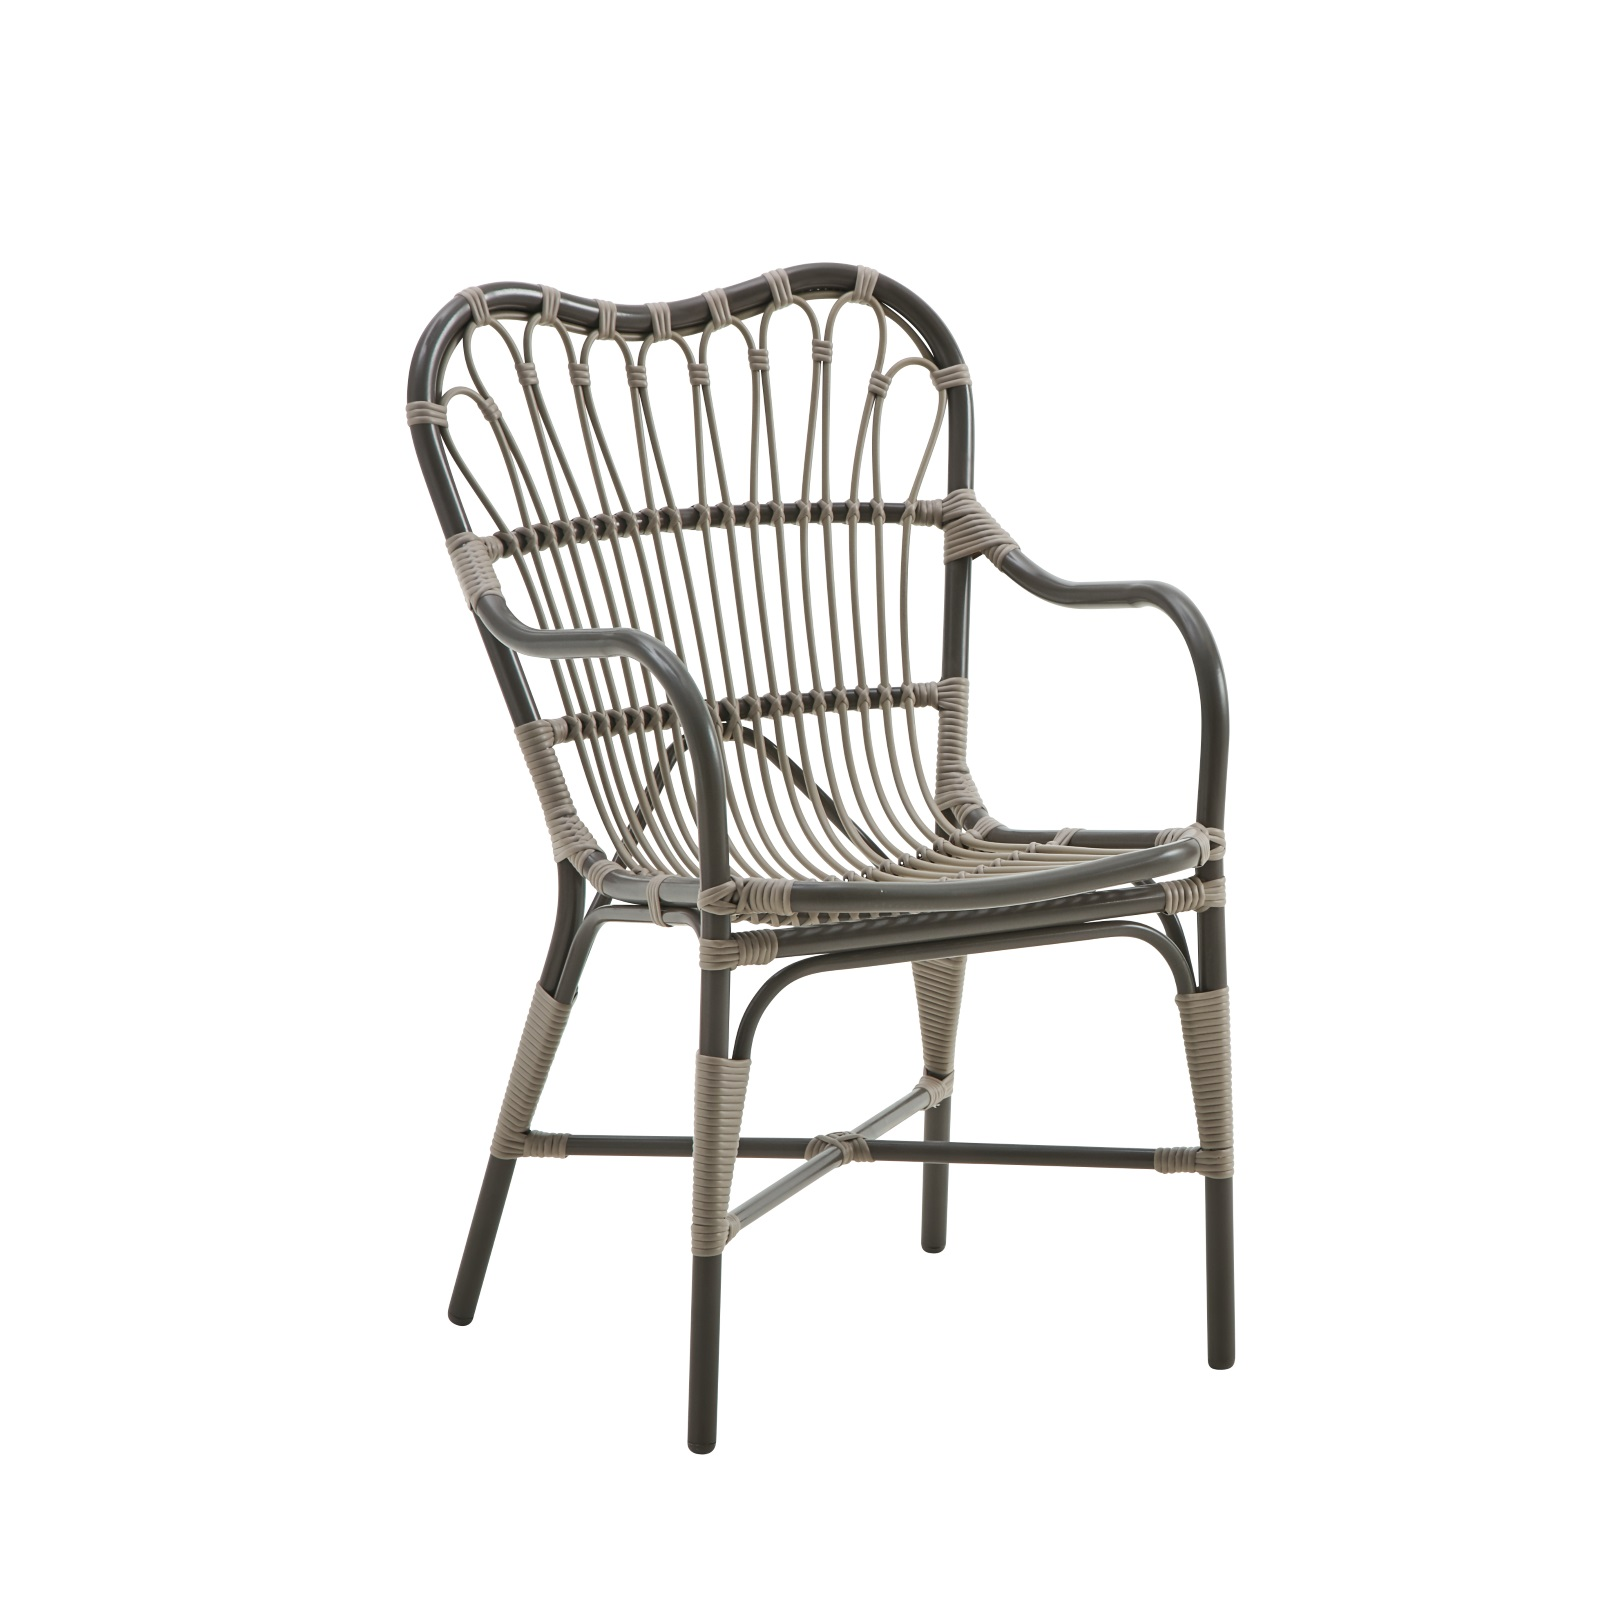 Margret chair Exterior Moccachino, Sika Design